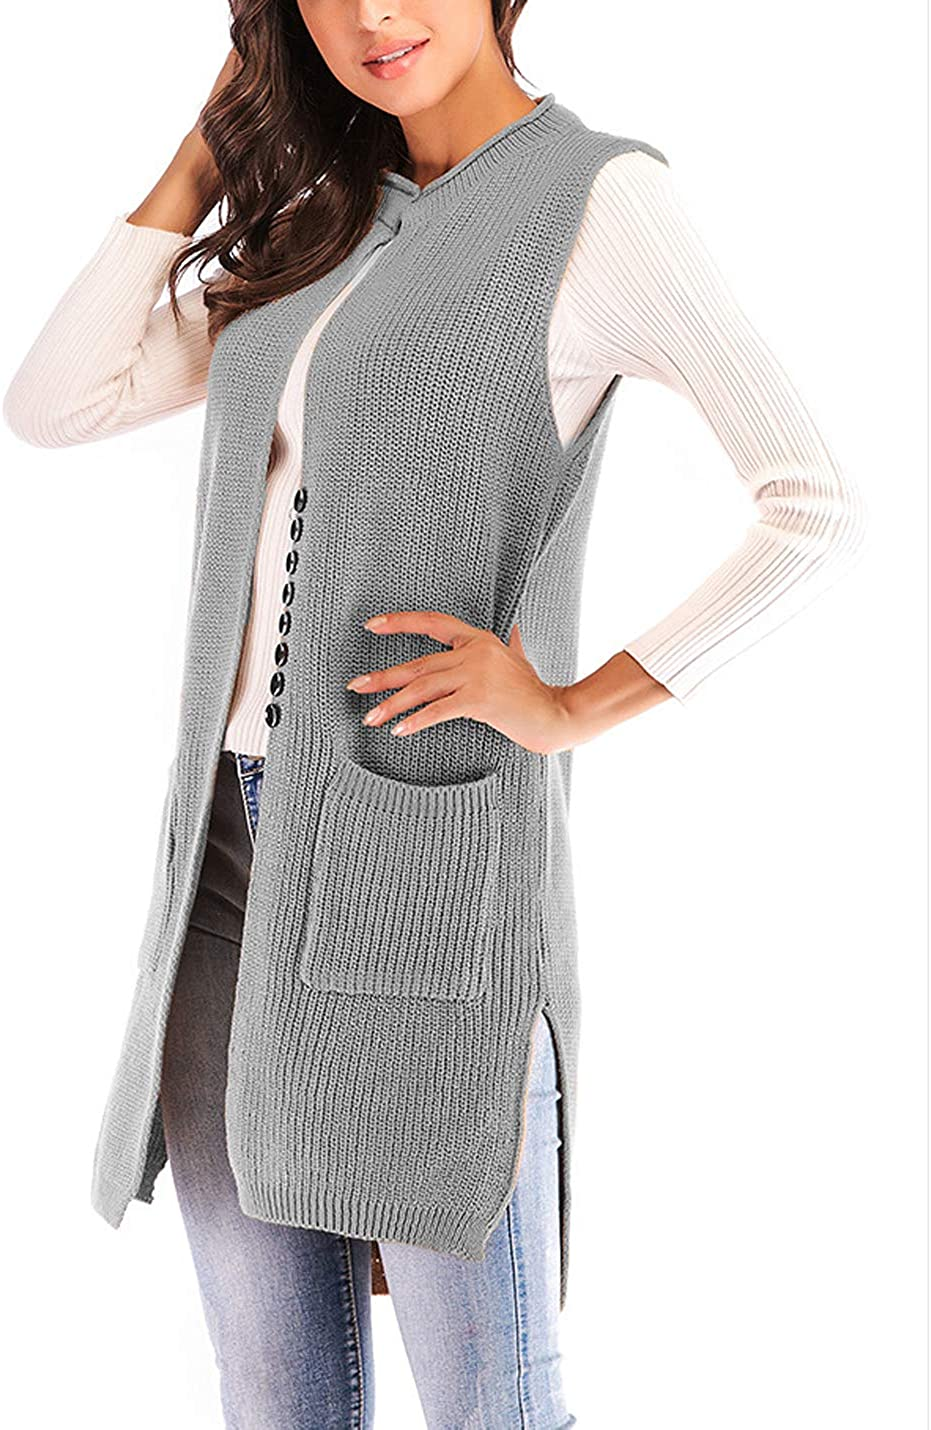 HUPOO Women's Casual Sweater Vests Buttons Mid-Long Knitted Top Coats